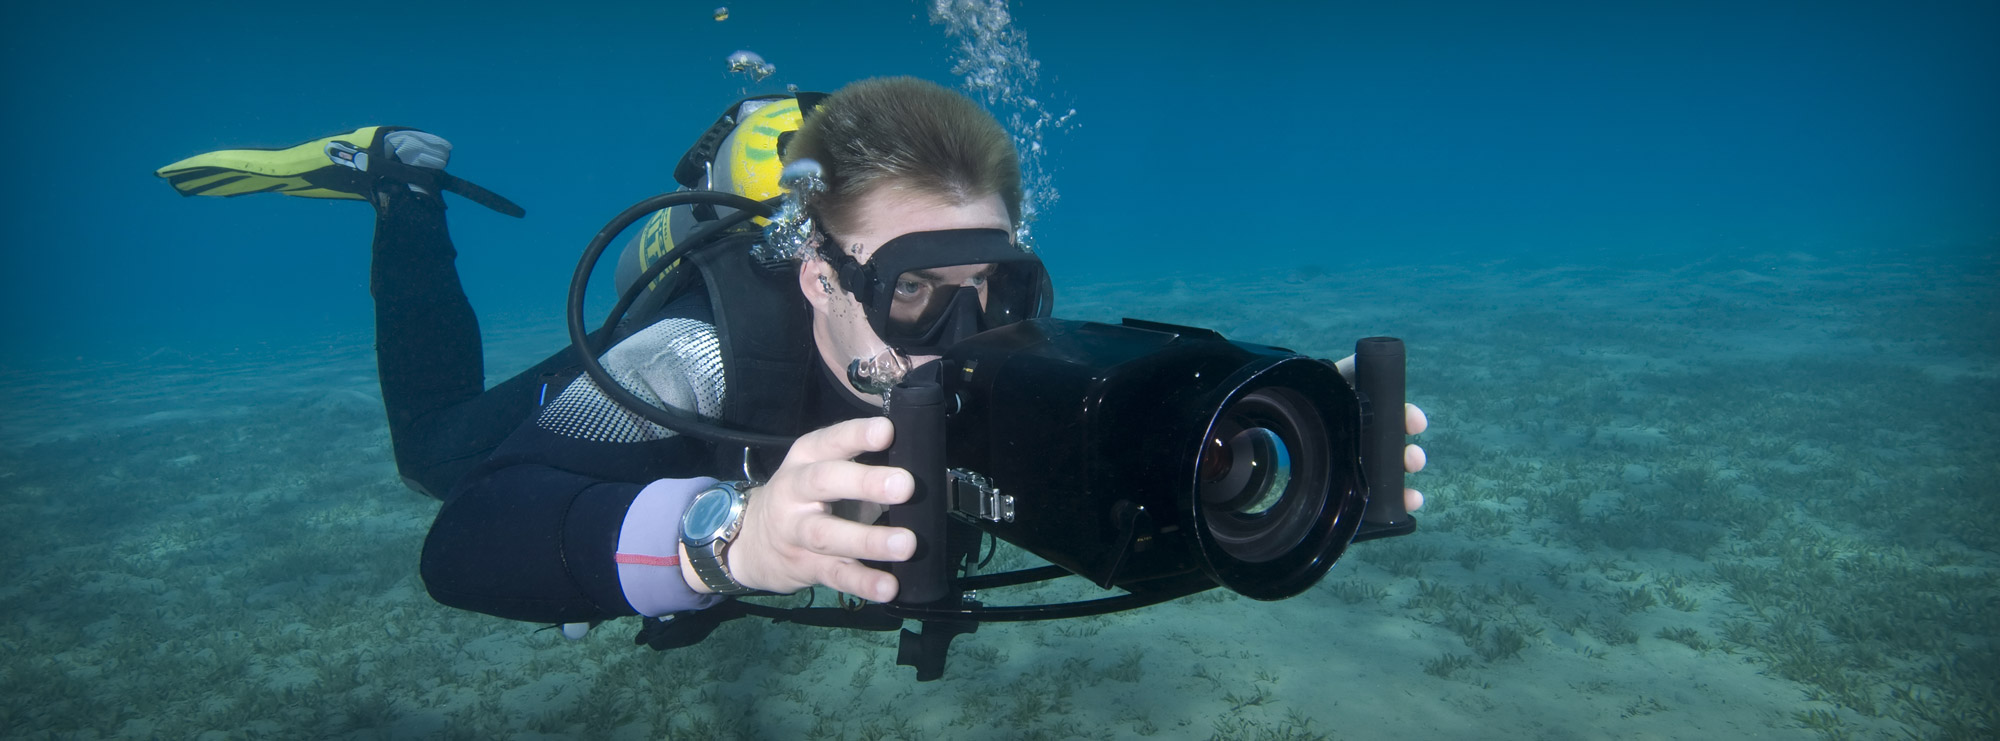 Underwater Cameraman Filming in Crystal Clear Water